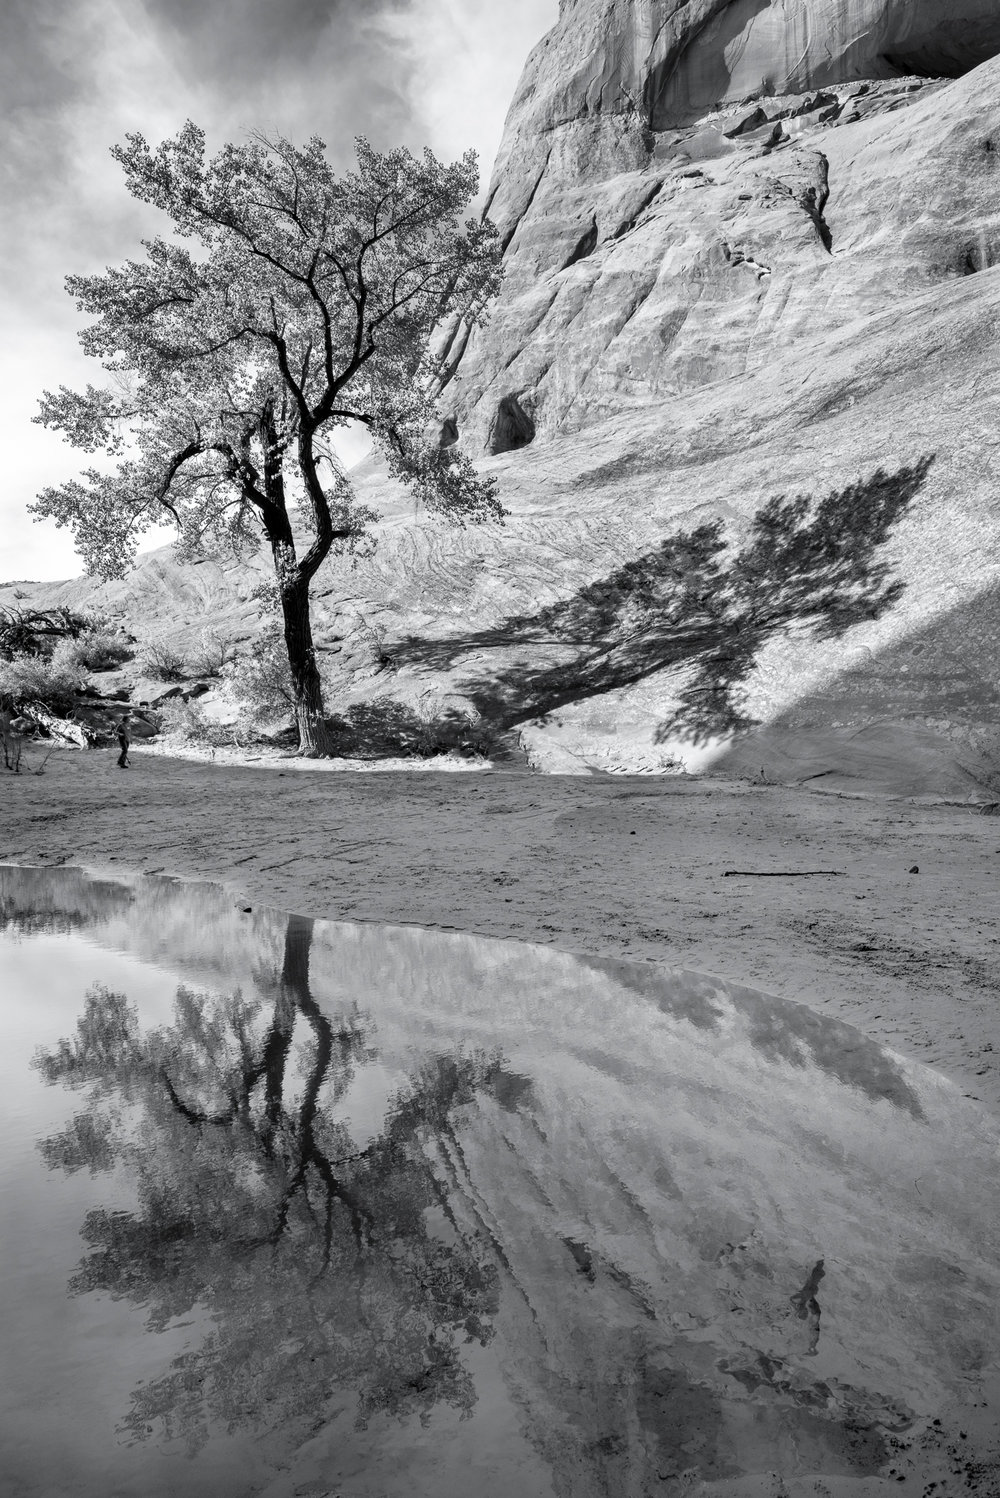 Tree, shadow, and reflection.  Middle Earth Waterfall, near Moab, UT.